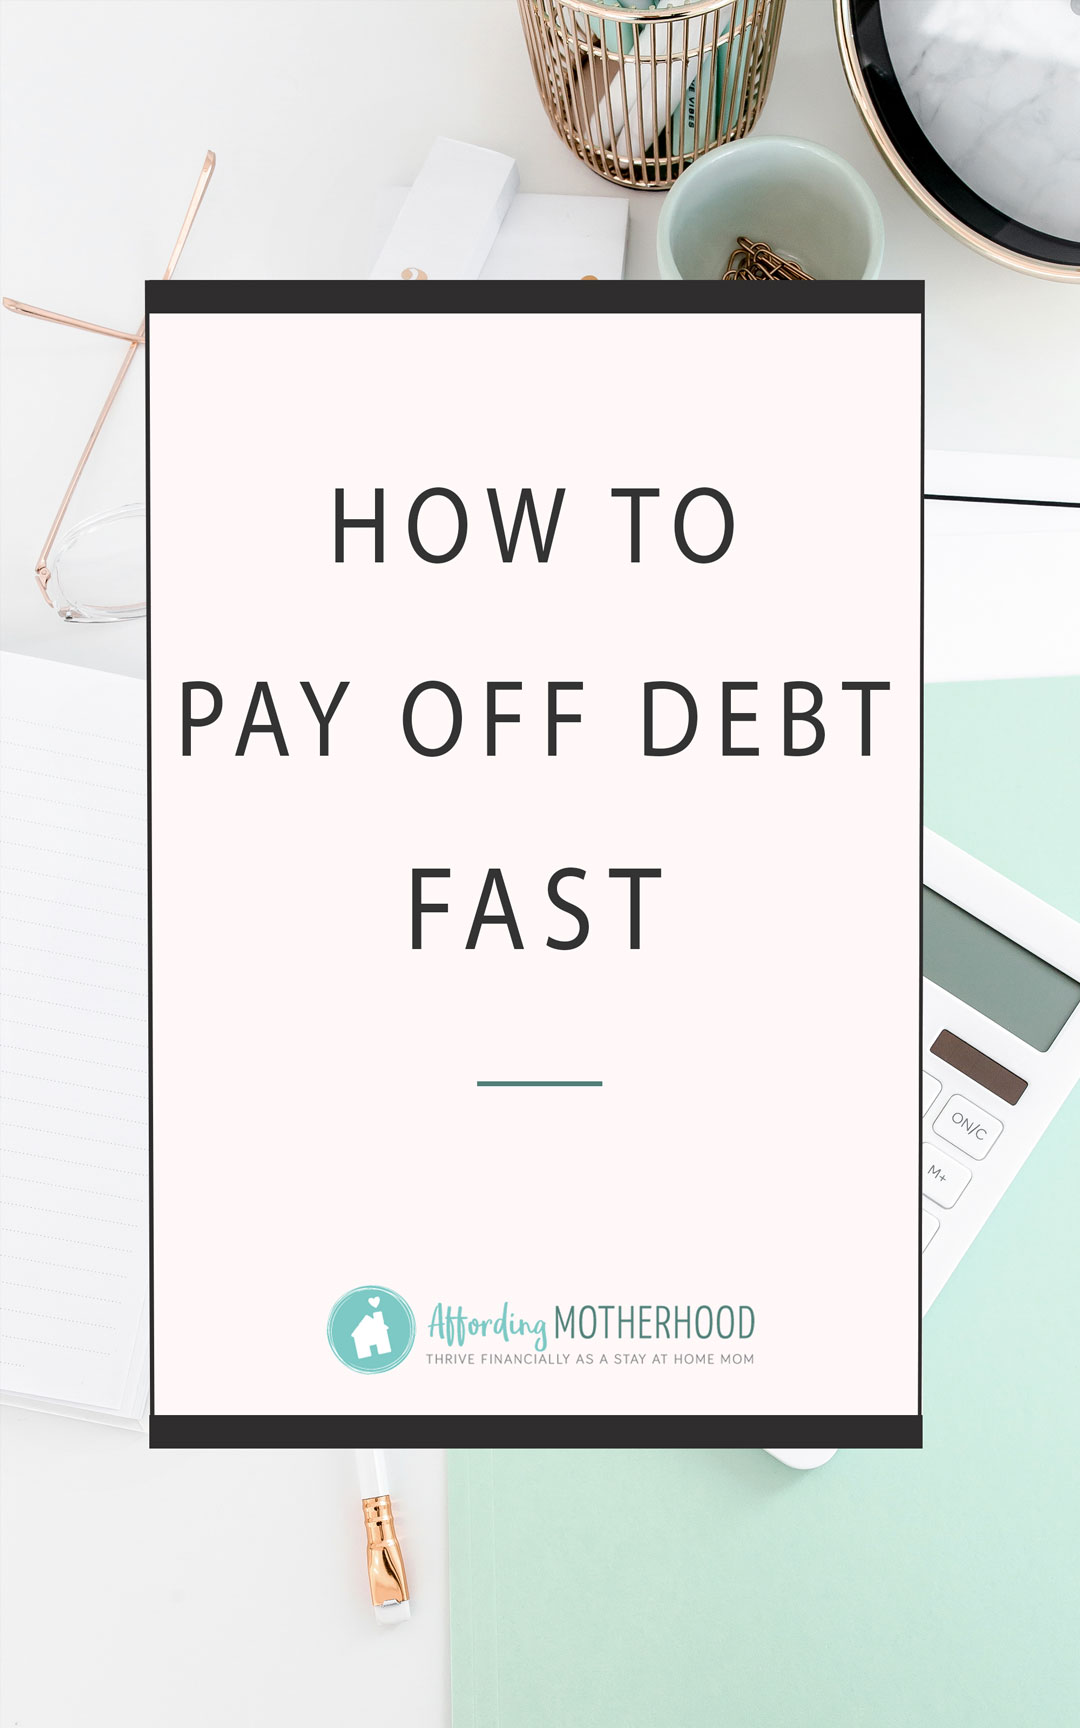 Even if you only have a few dollars socked away in a mason jar, even if you have no money right now at all, let me share with you why you can (and should) get out of debt, and how you can do it fast!